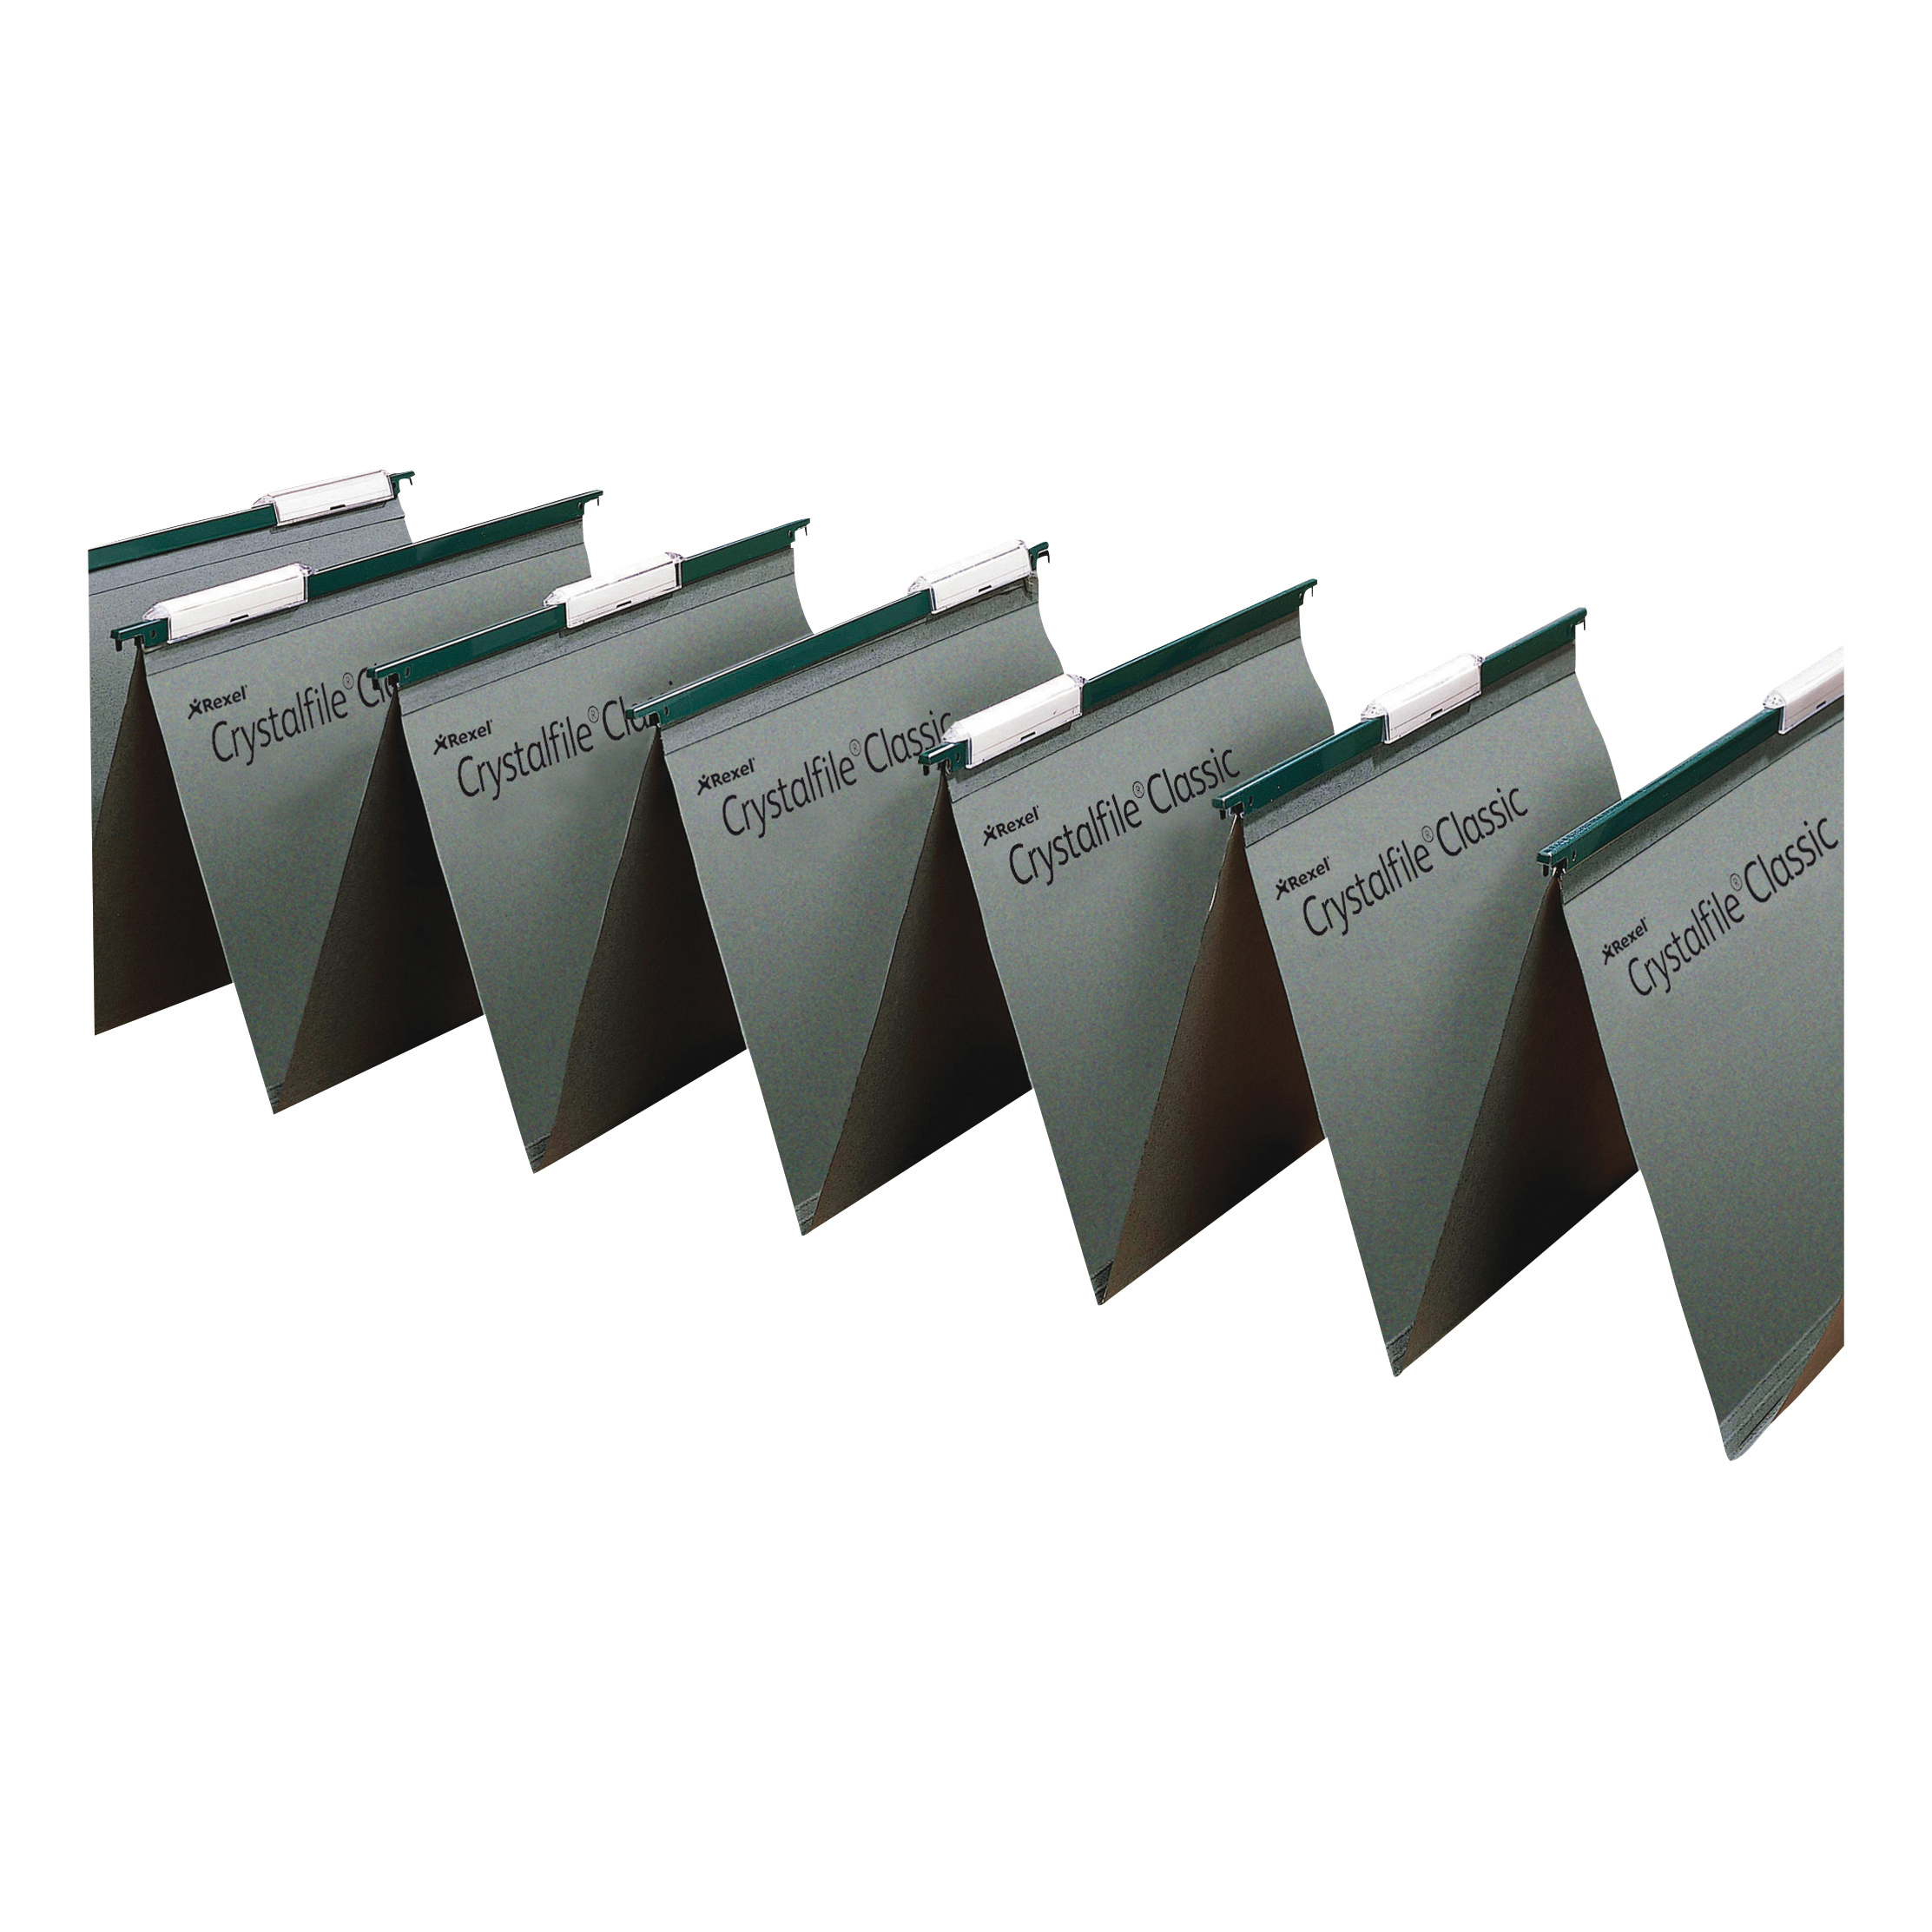 Suspension File Rexel Crystalfile Classic Linking Suspension File Manilla 15mm V-base Foolscap Green Ref 78650 Pack 50